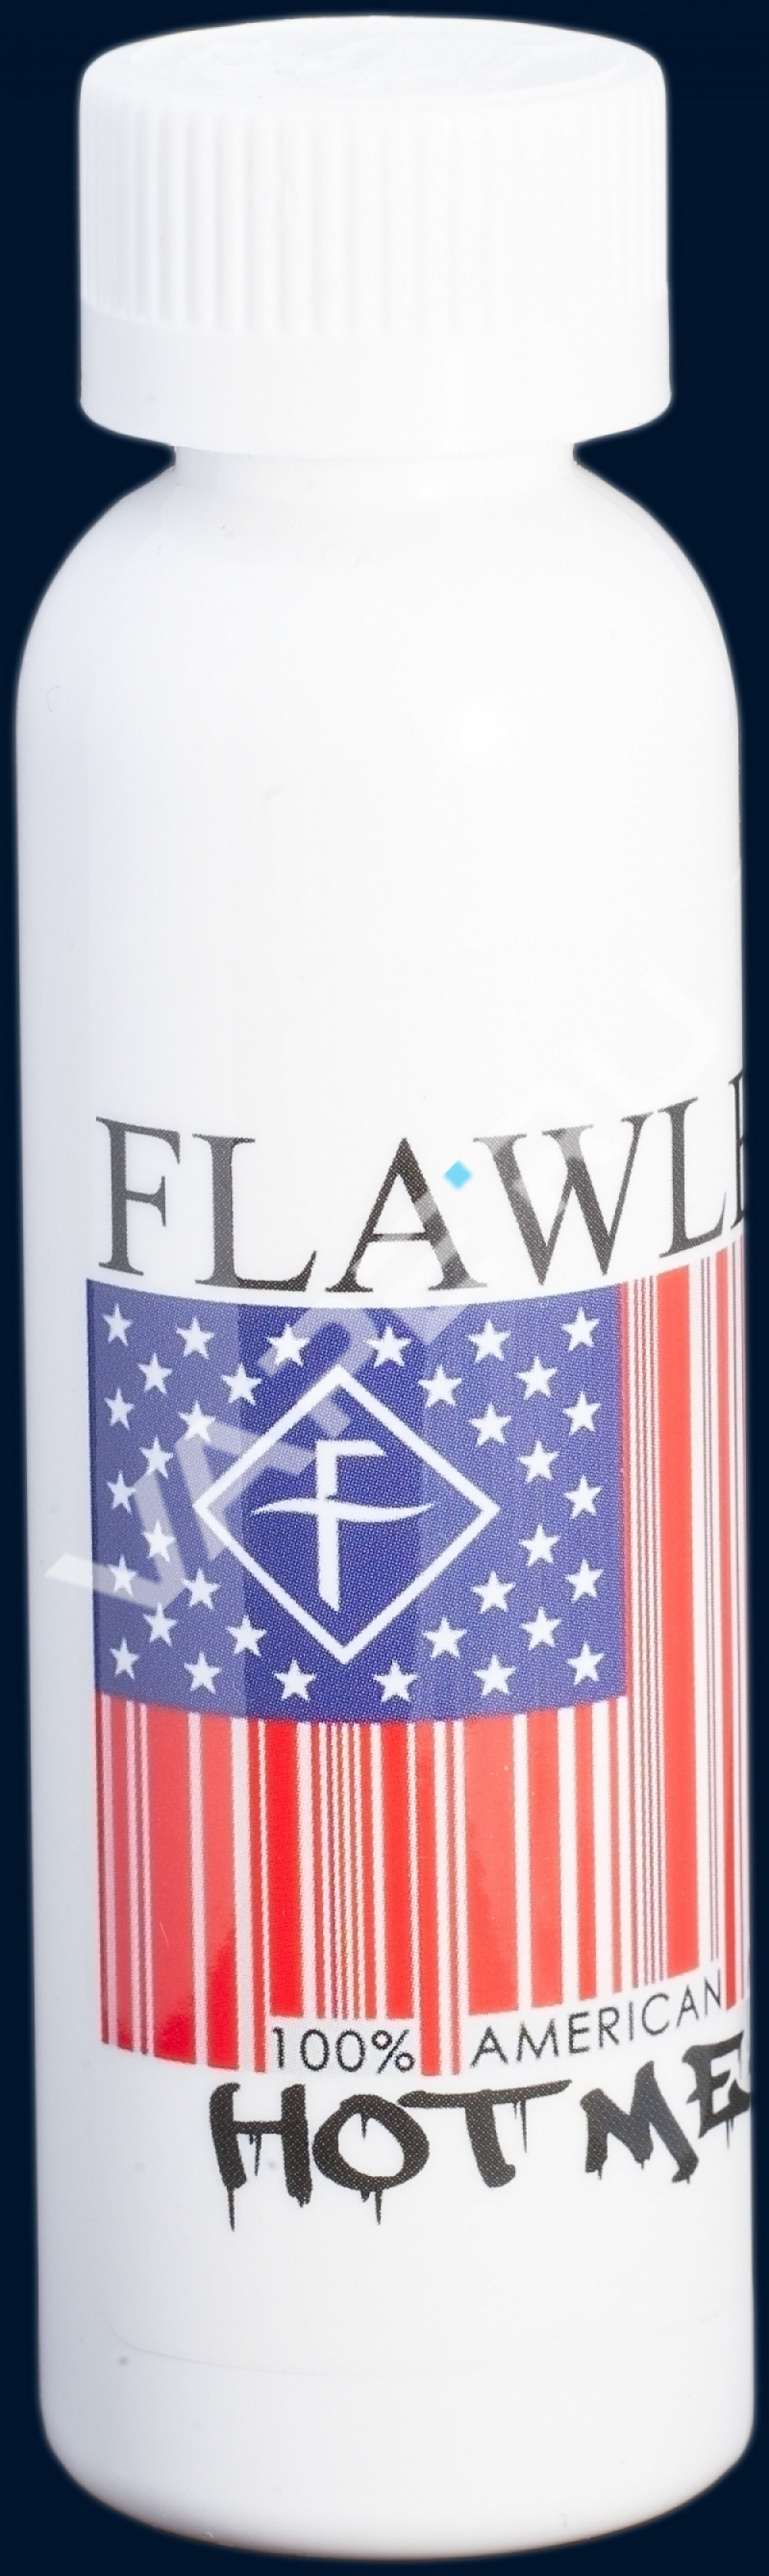 Flawless, Hot Mess, 60 ml